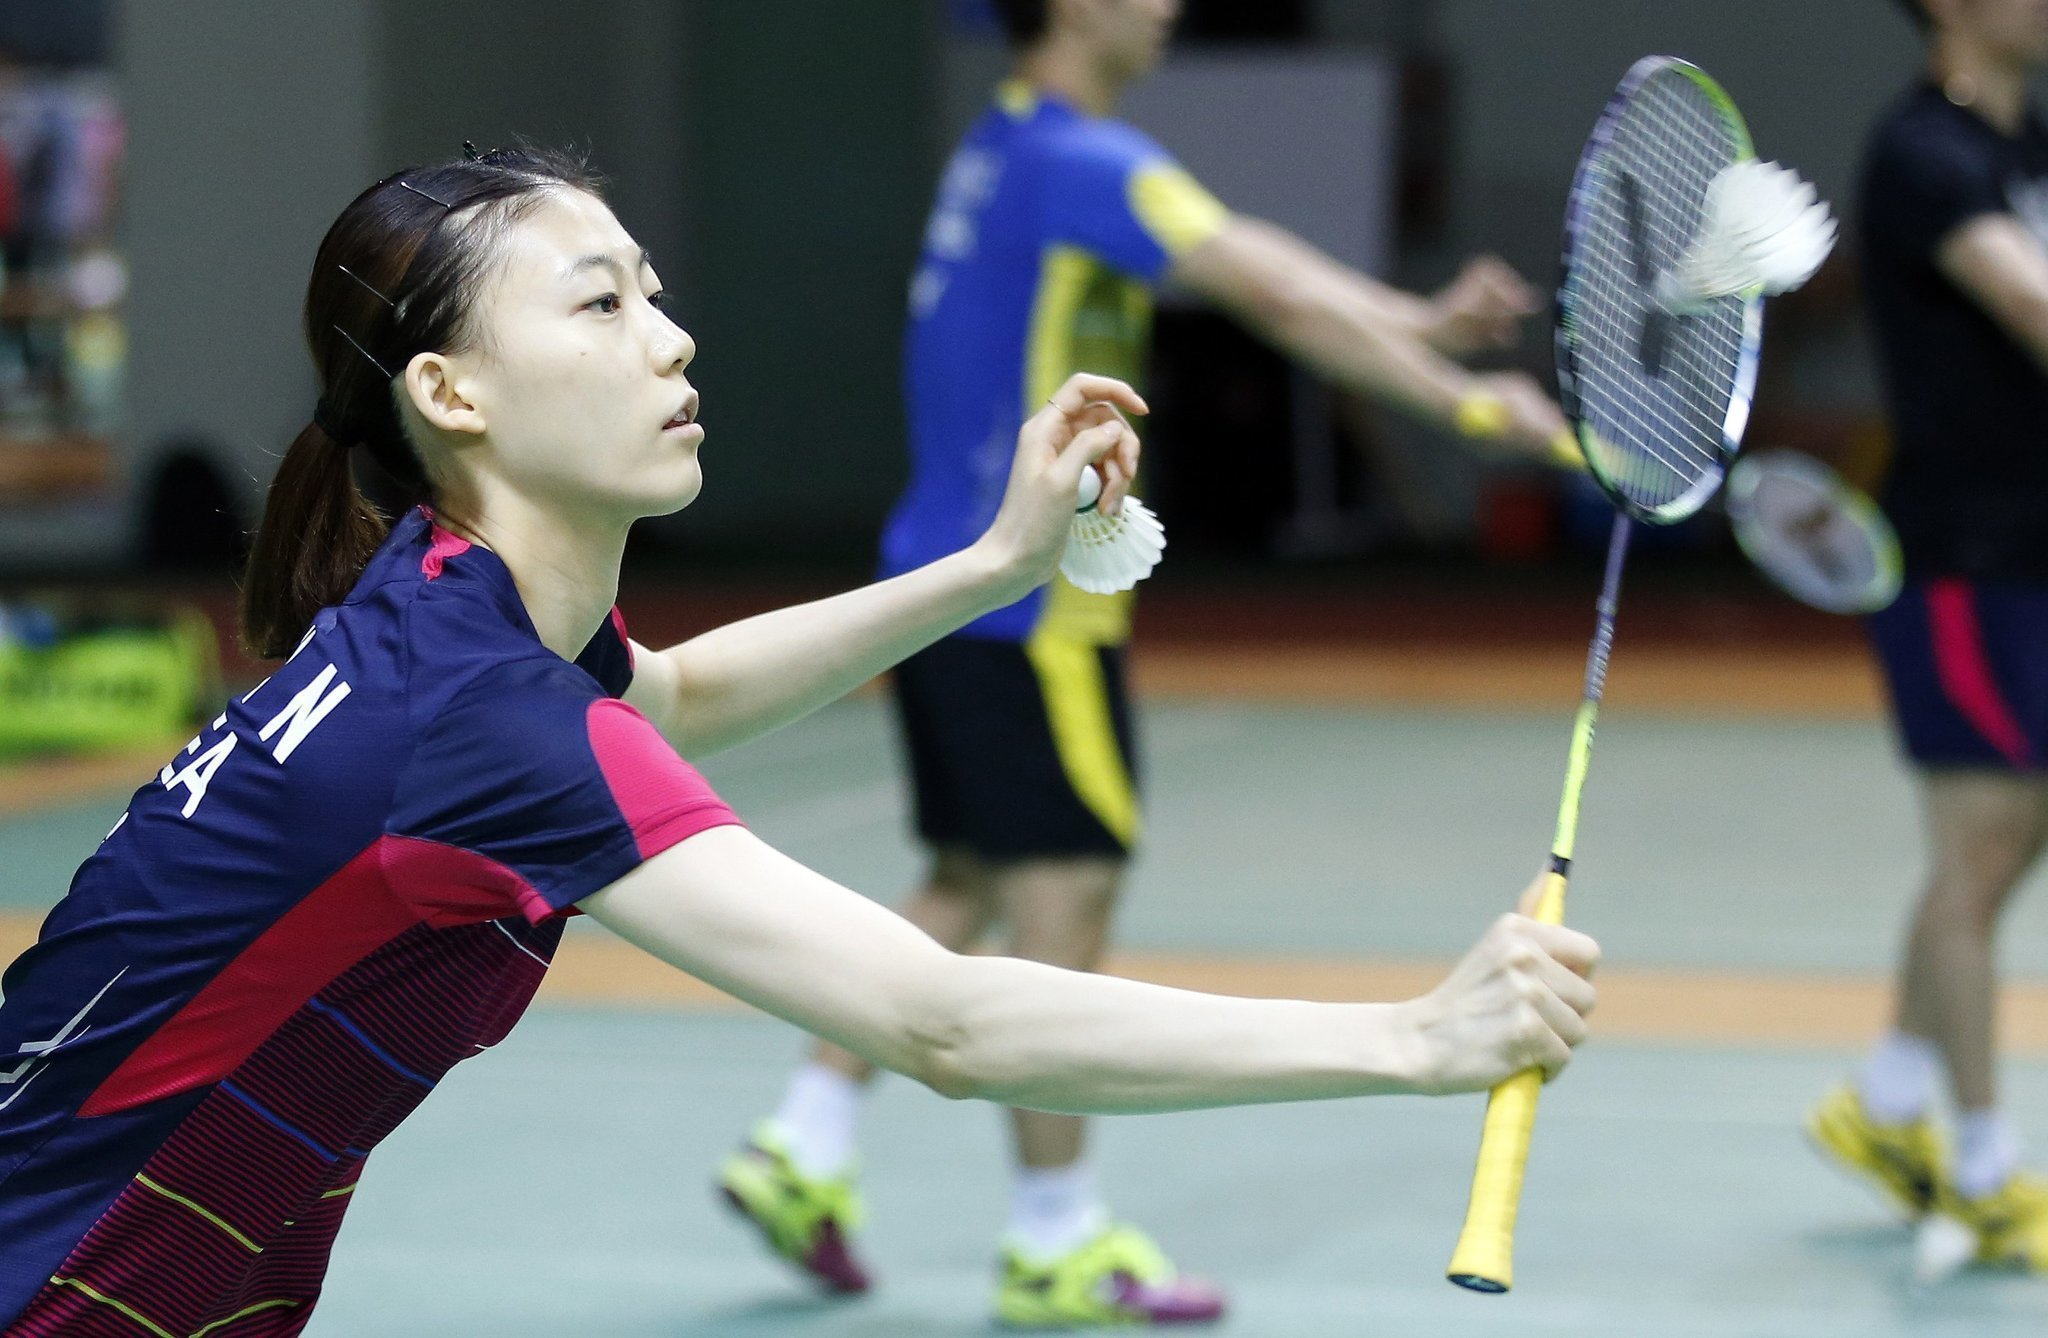 Badminton tries to shake off scandals at the Rio Olympics The